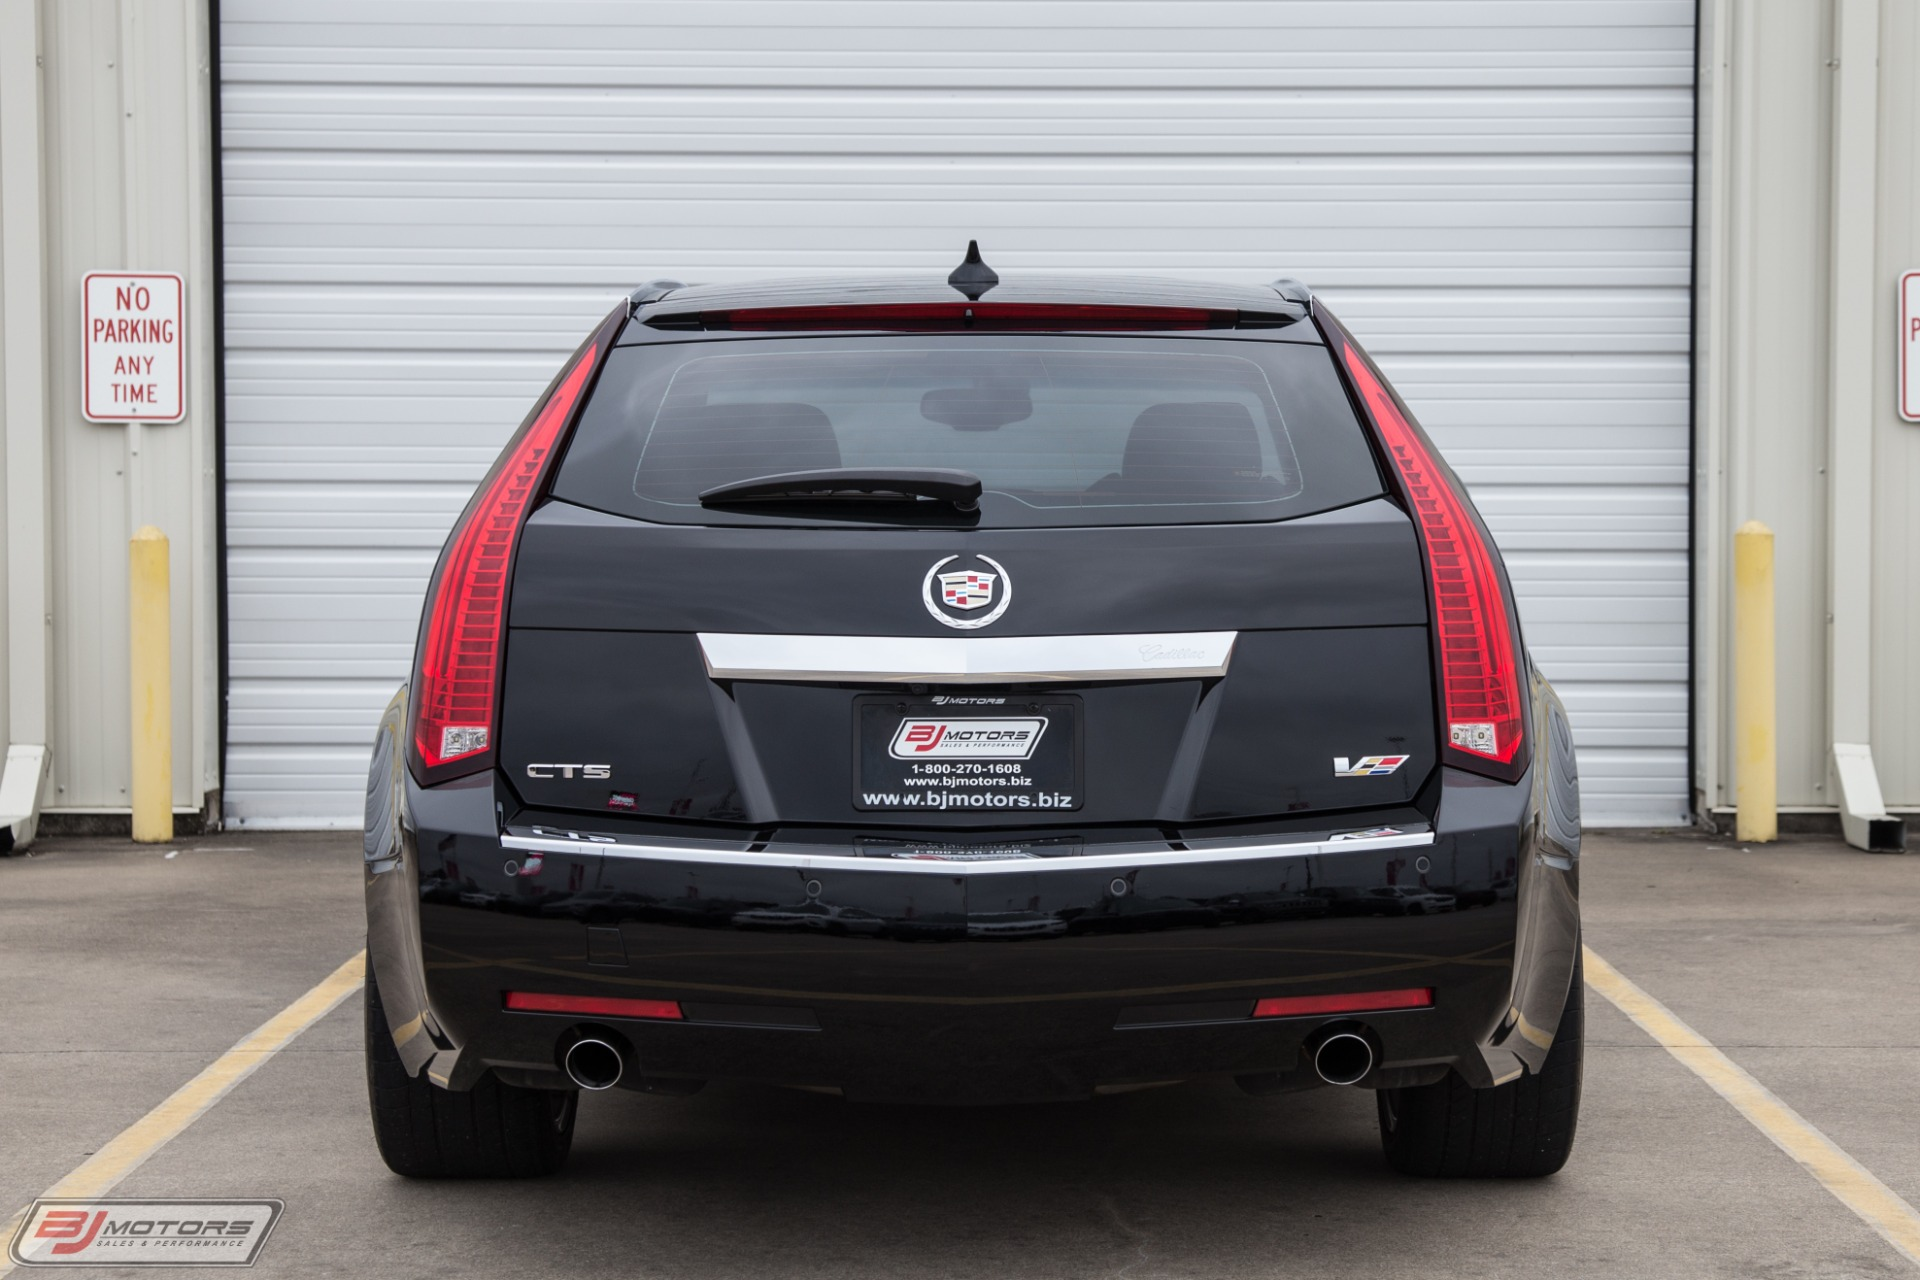 Used-2014-Cadillac-CTS-V-Wagon-HPE700-Package